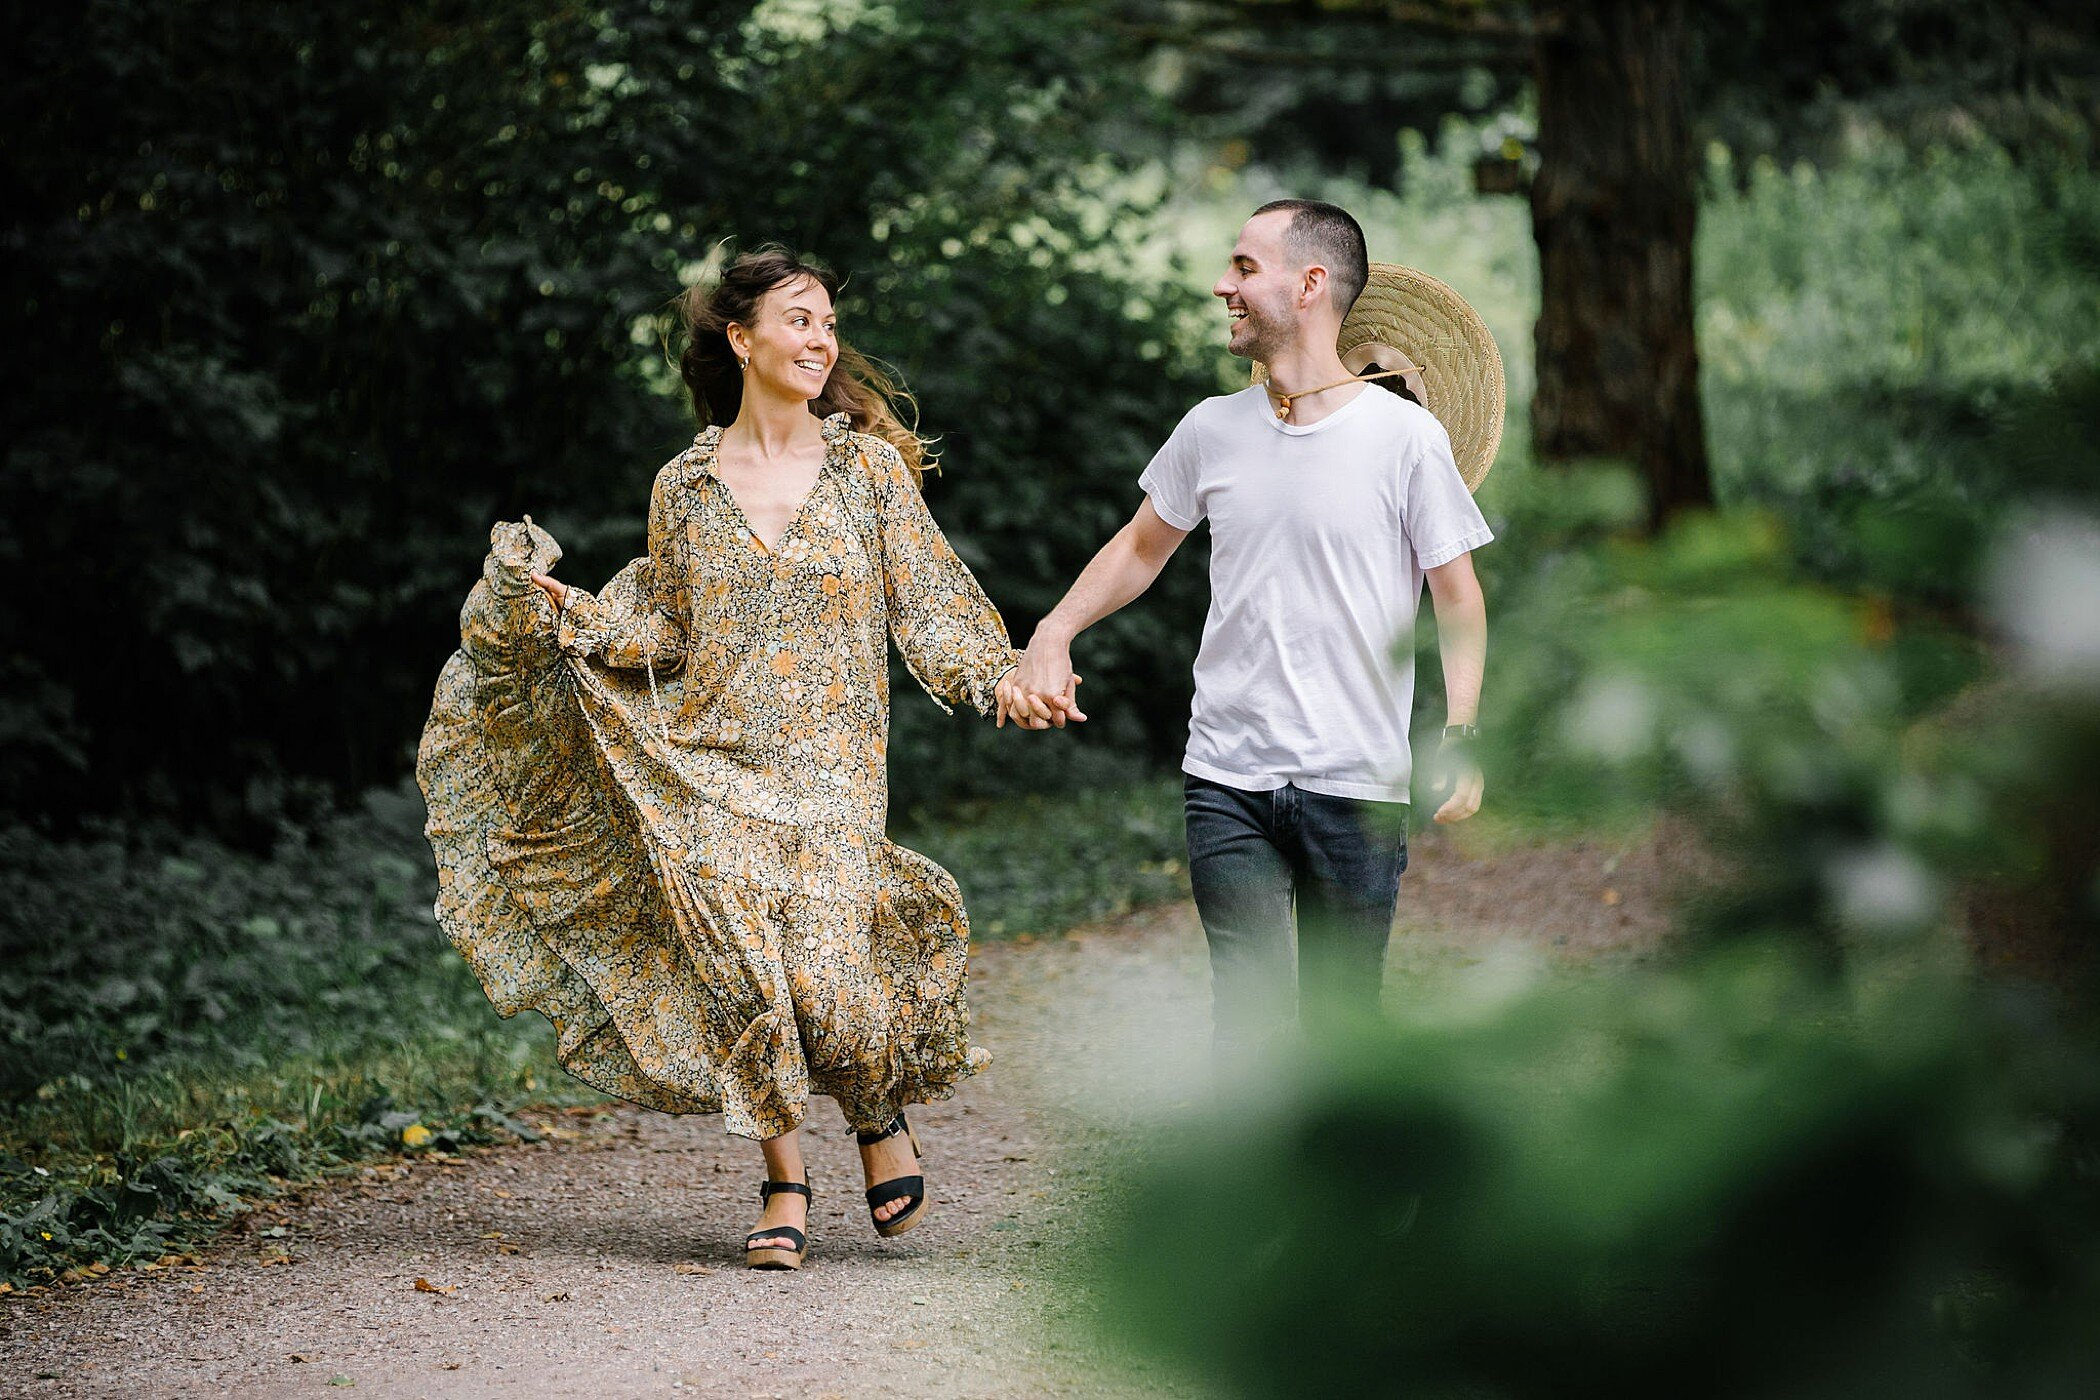 July14.DanandRo2940_Note Photography Documentary Photographer Wedding Photos Vancouver B.C. Best 2019 2020 Jericho Beach Engagement Session Gastown Di Beppe DiBeppe.jpg